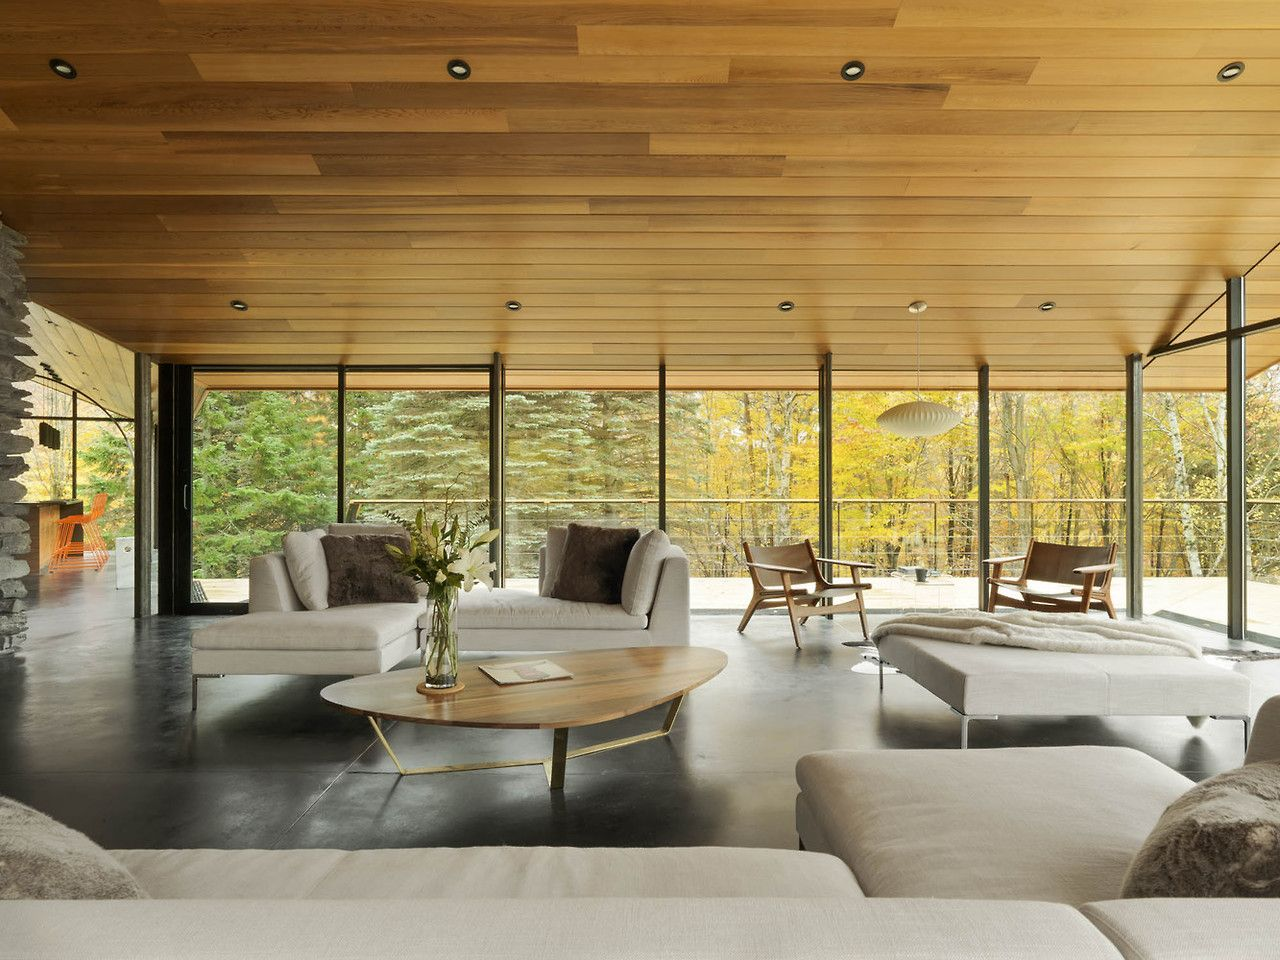 Elegant Pictures Of Glass Houses